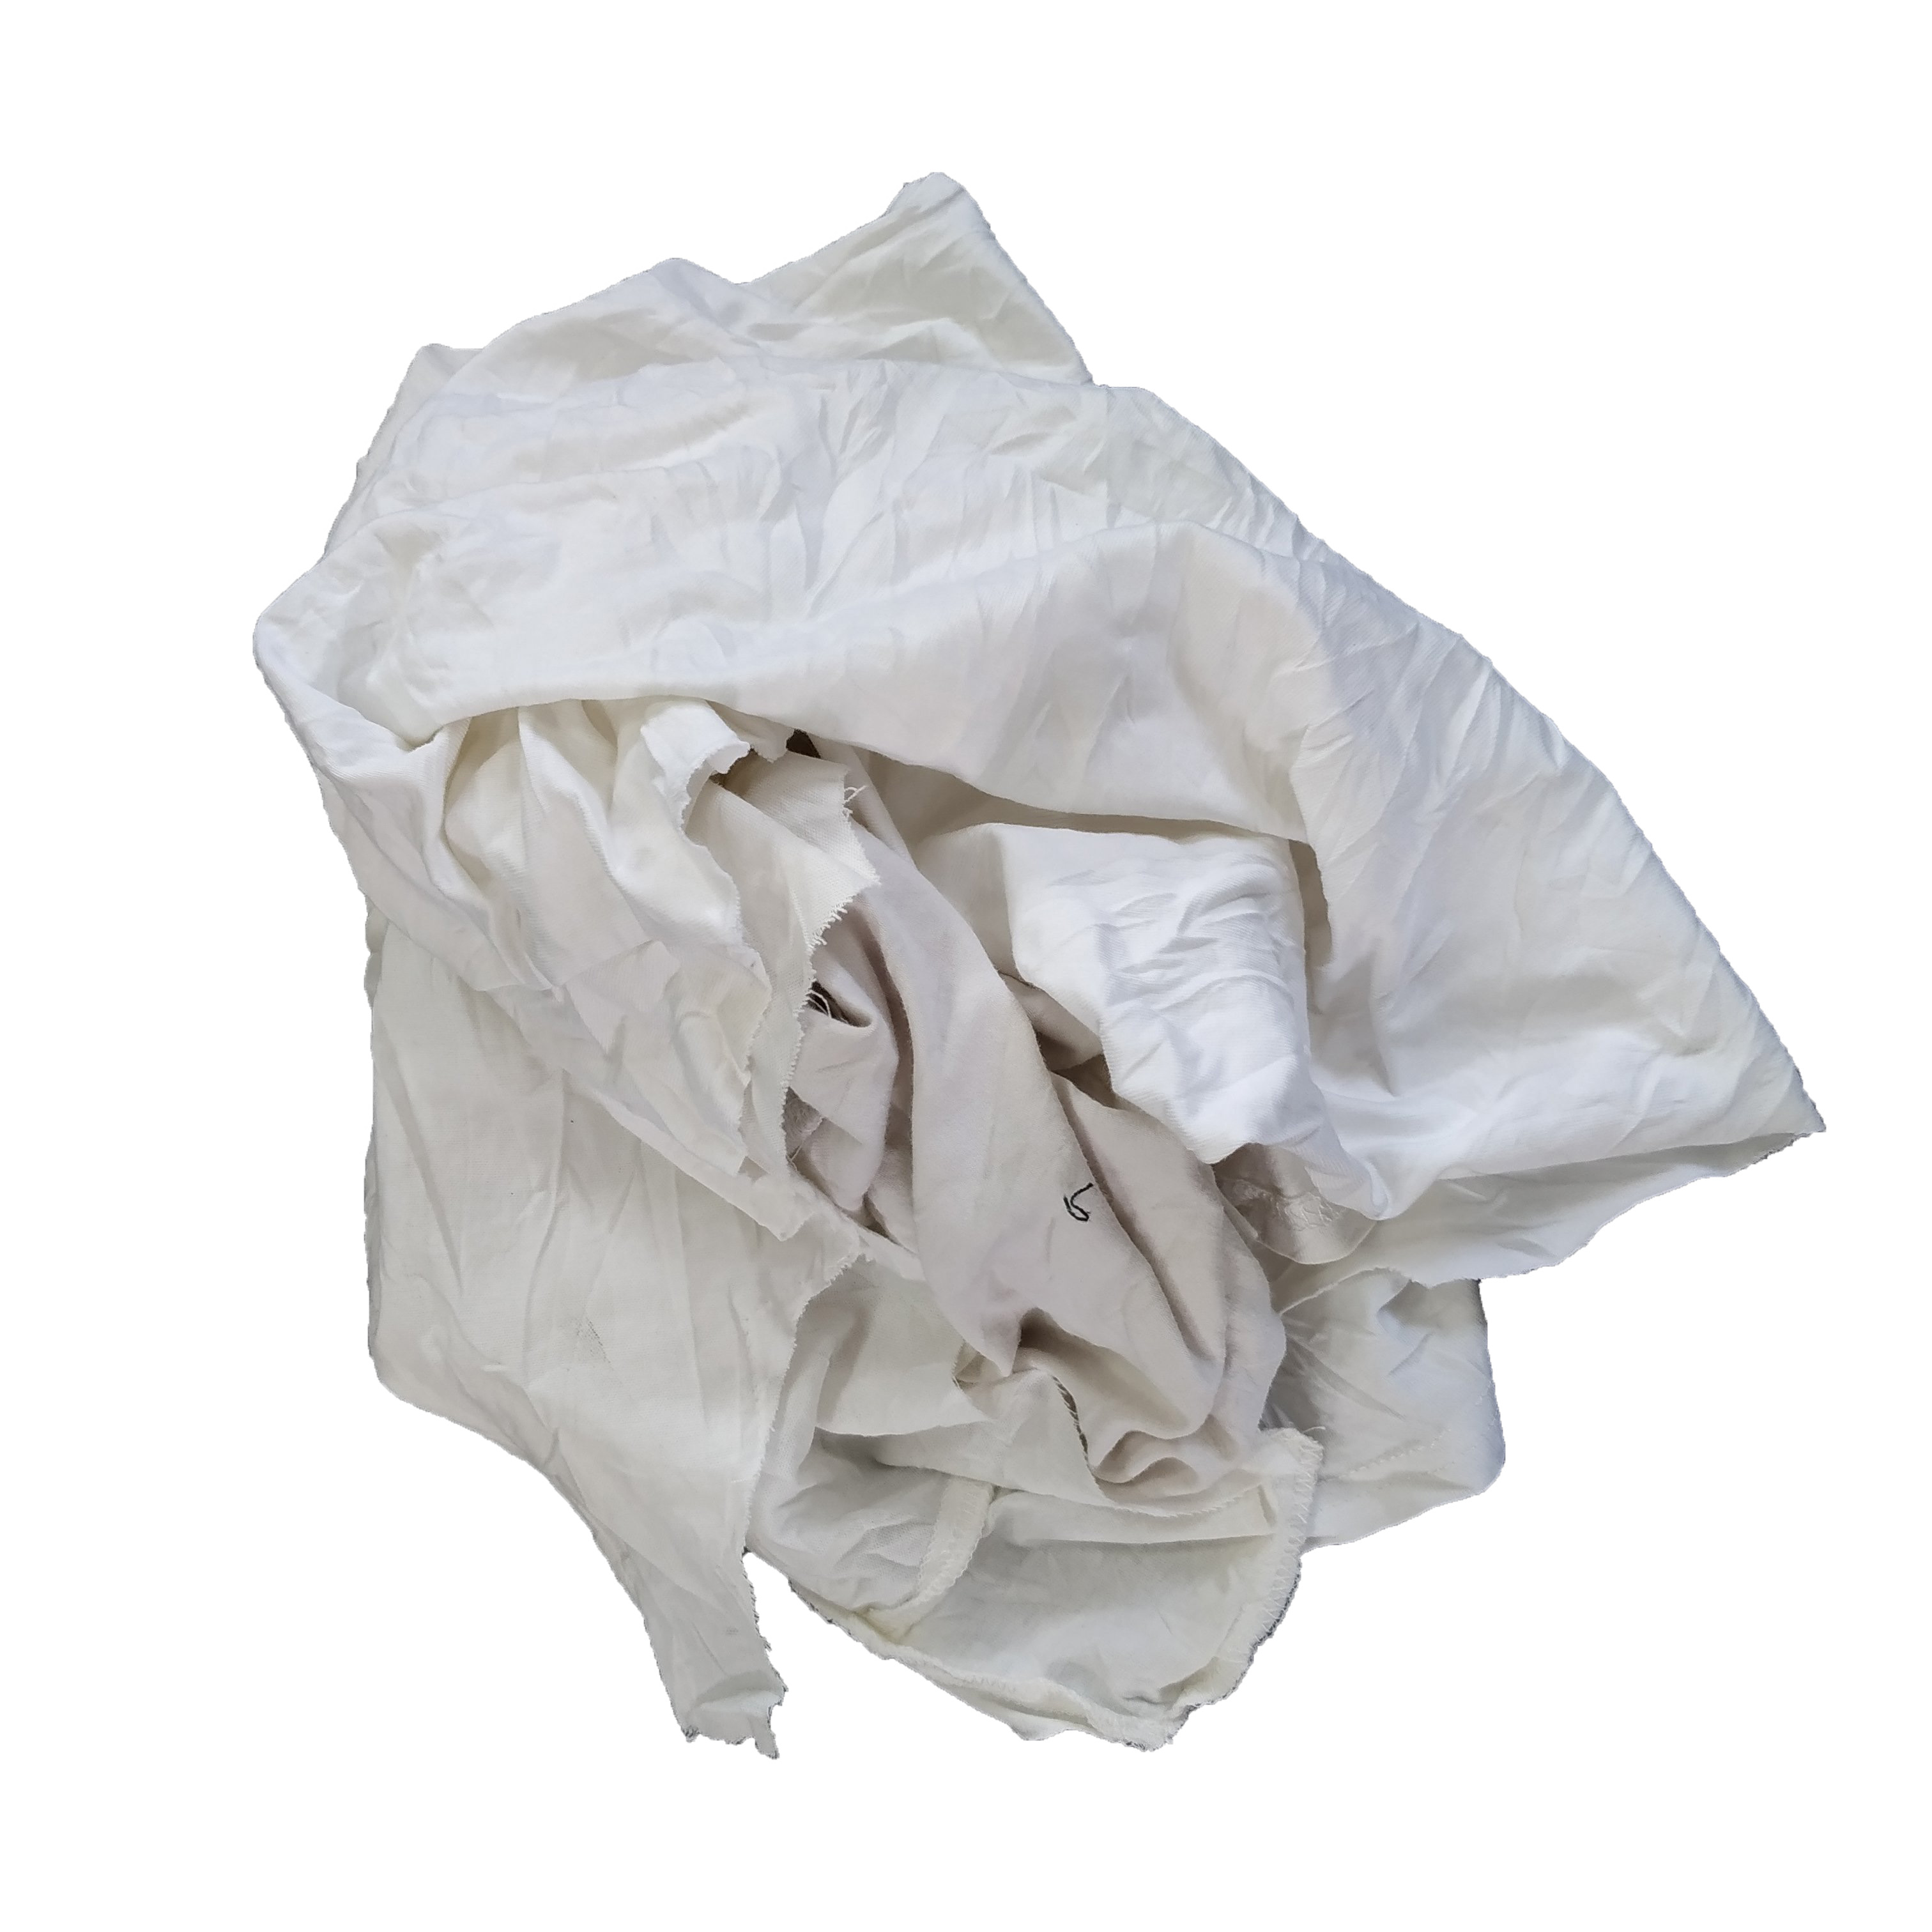 Top-quality cotton waste 100 used t shirt cotton rags wholesale t shirt rags